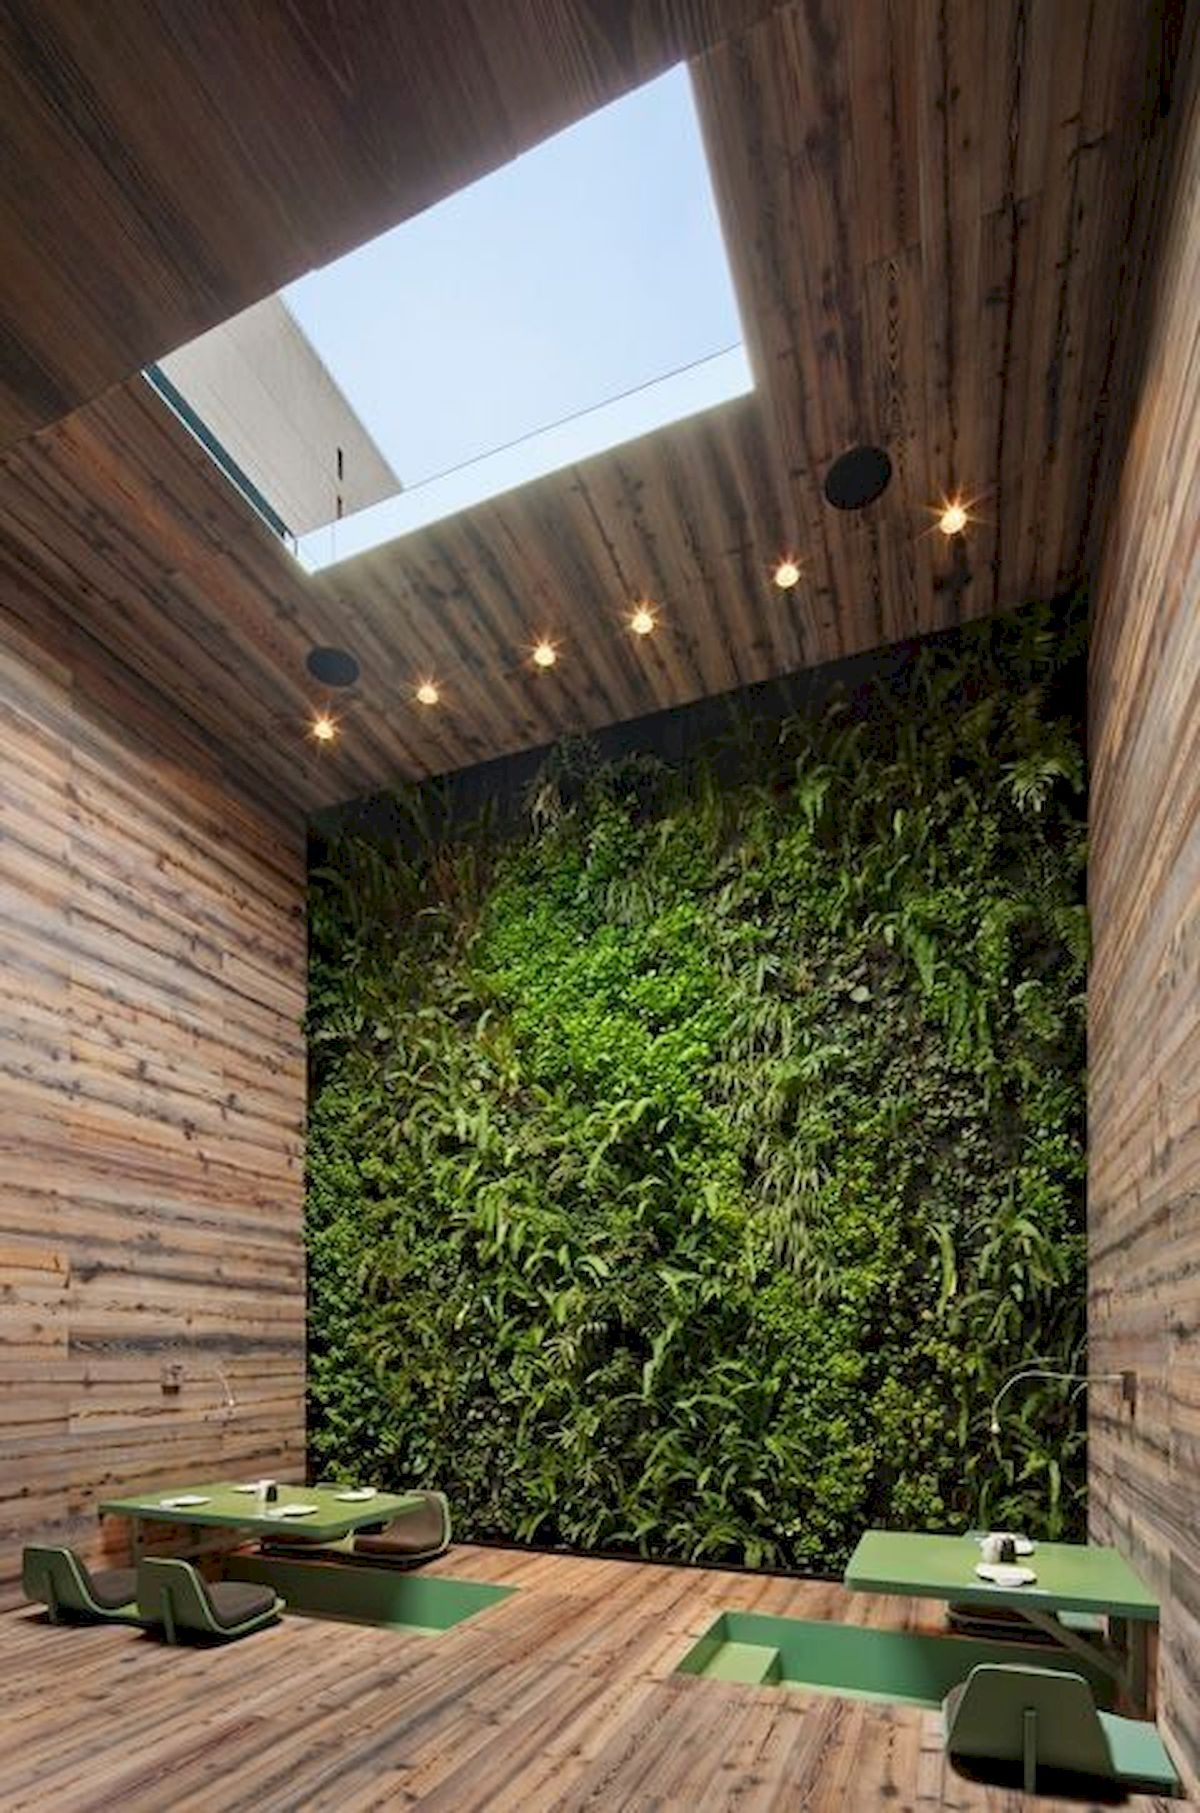 44 Fantastic Vertical Garden Ideas To Make Your Home Beautiful (24)